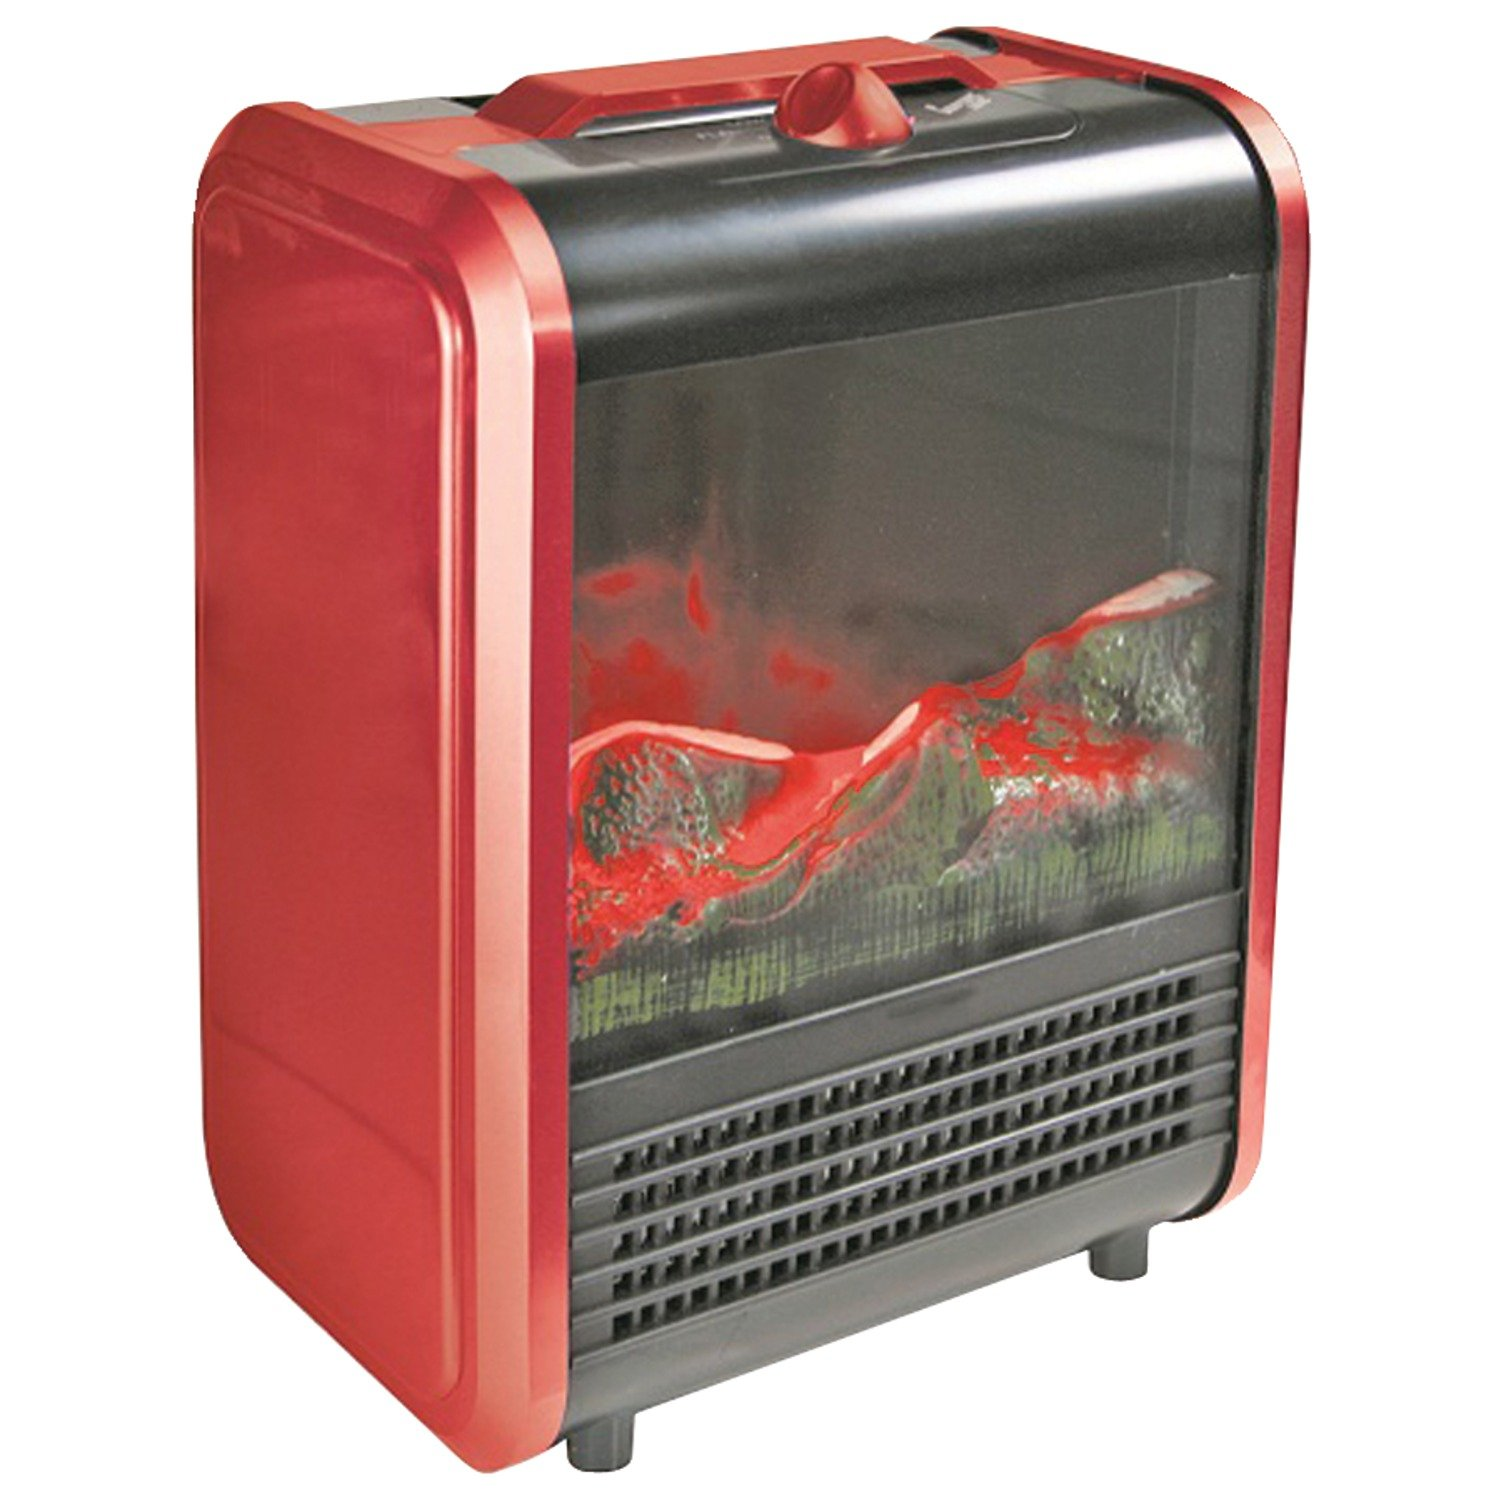 Amazon.com: Comfort Zone CZFP1 Metal Mini Electric Fireplace: Home ...